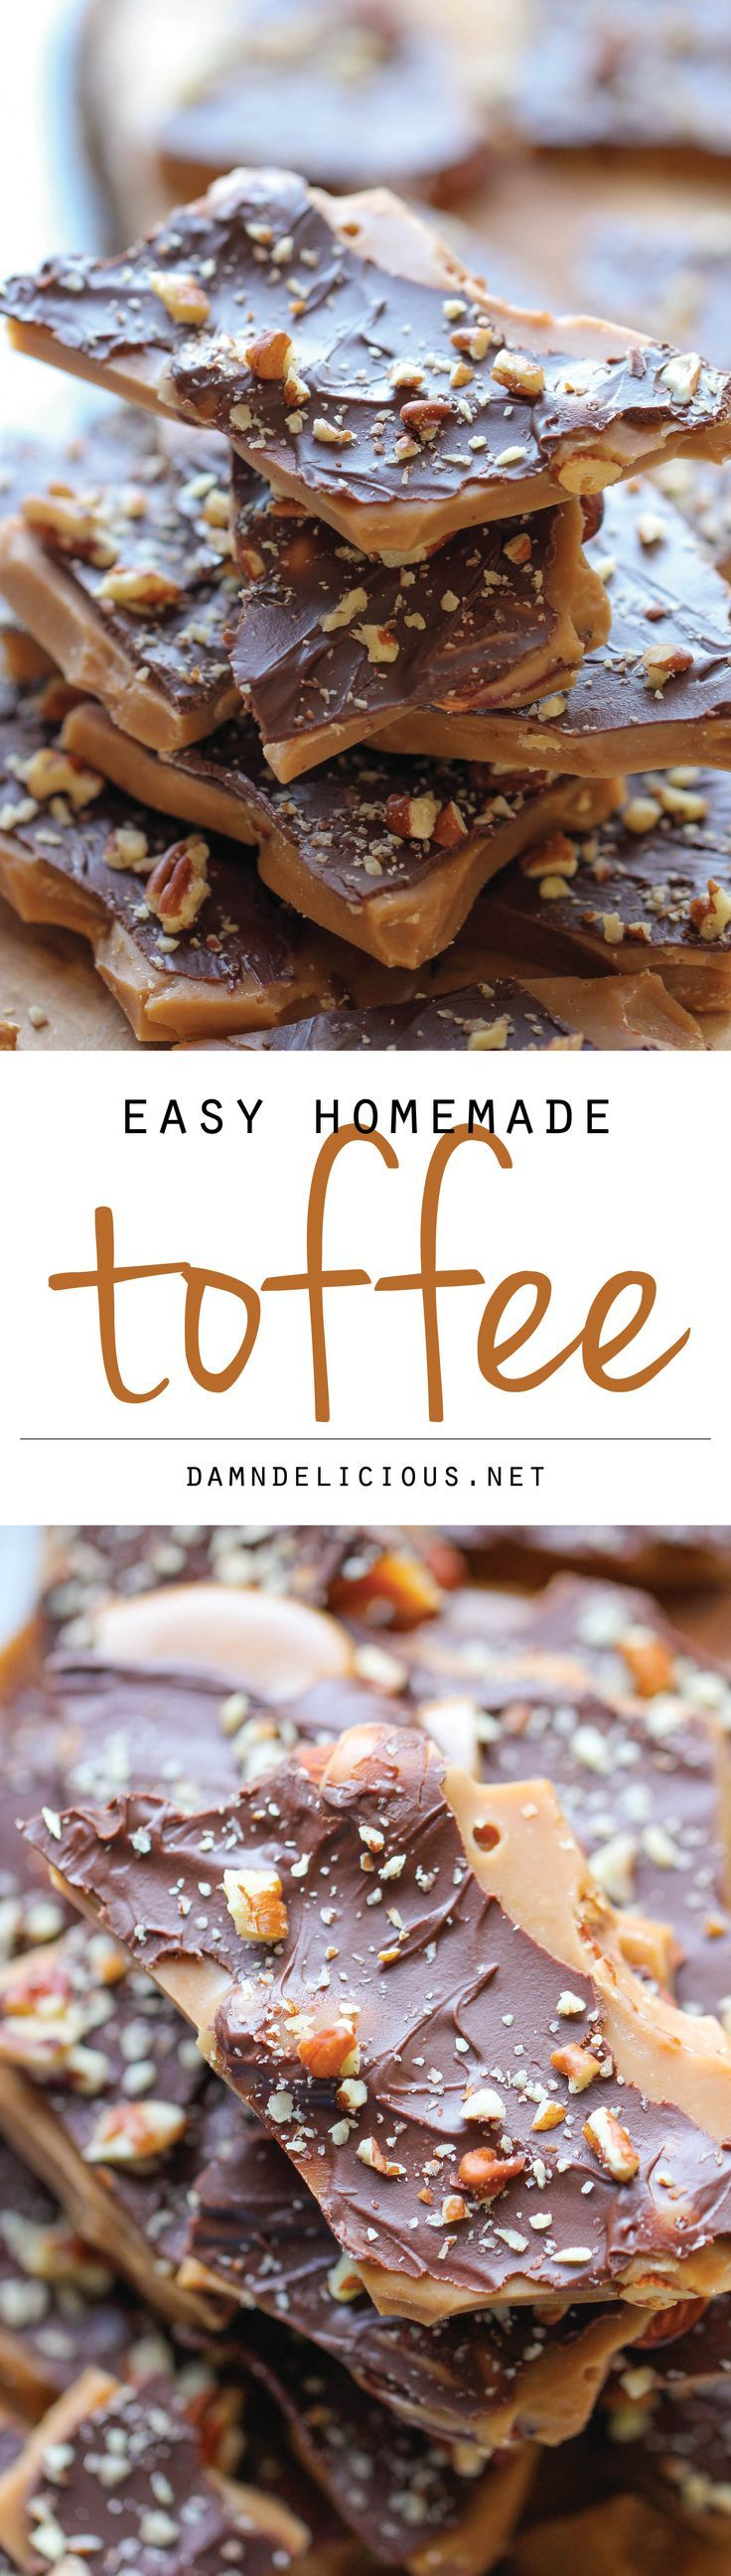 Easy Homemade Toffee - An unbelievably easy, no-fuss, homemade toffee recipe. So addictive, you won't want to share! @damndelicious